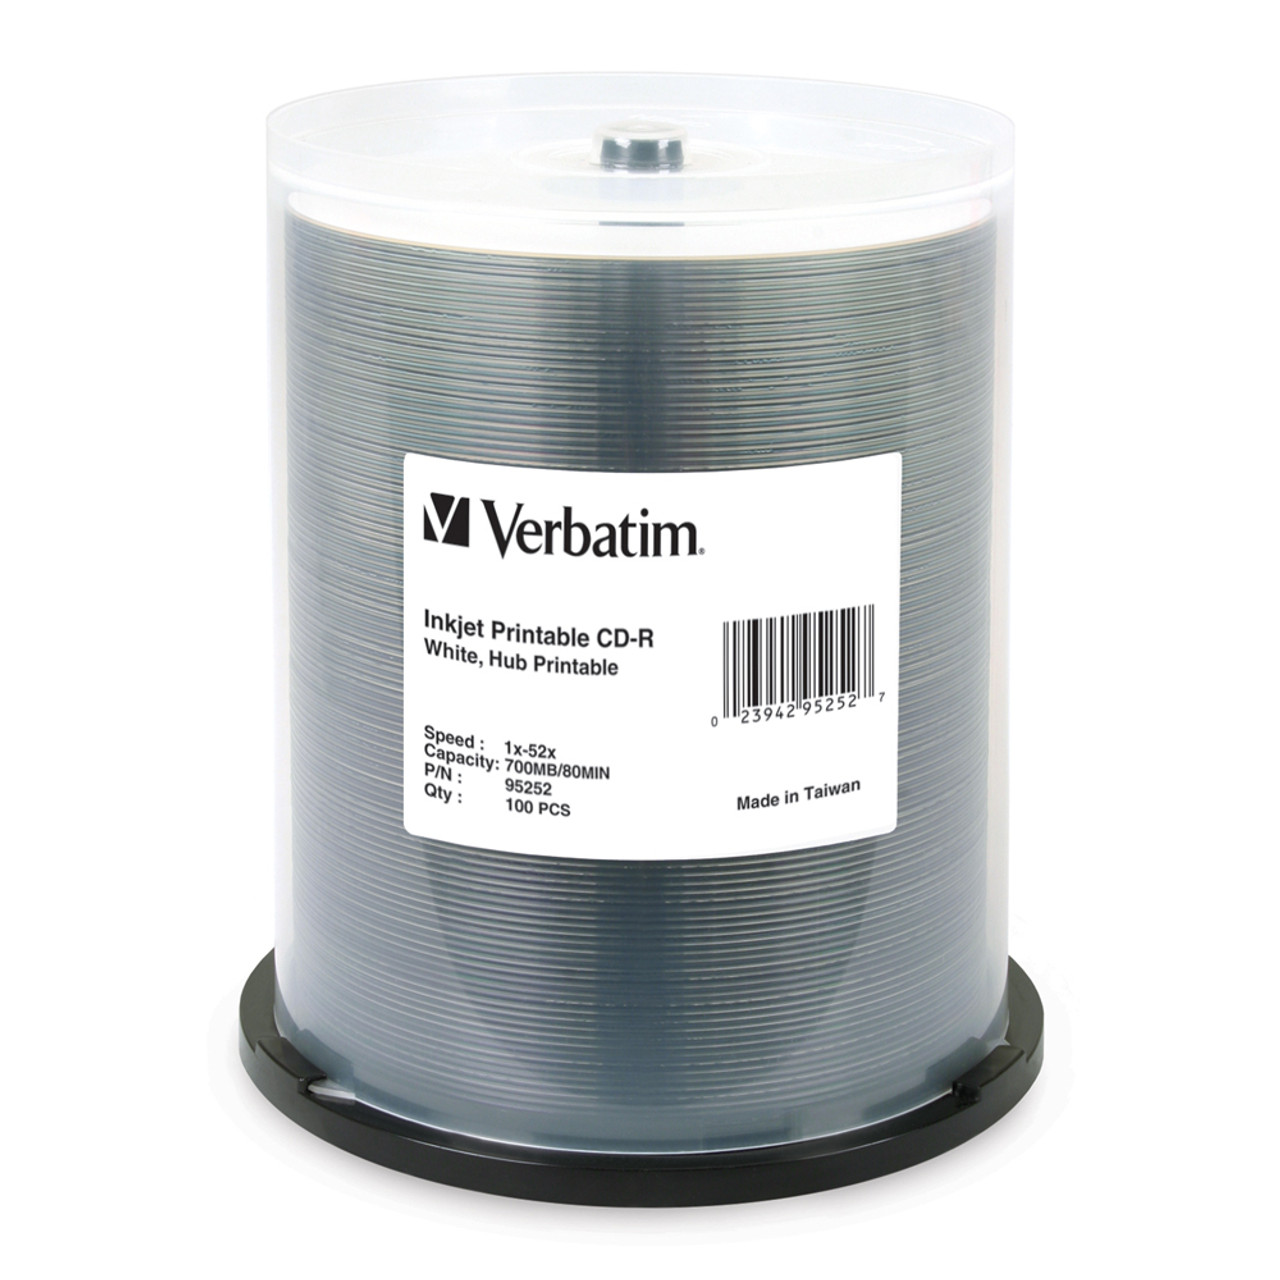 photo about Inkjet Printable Cds titled VERBATIM 95252 CD-R INKJET PRINTABLE WHITE - 100 PACK SPINDLE